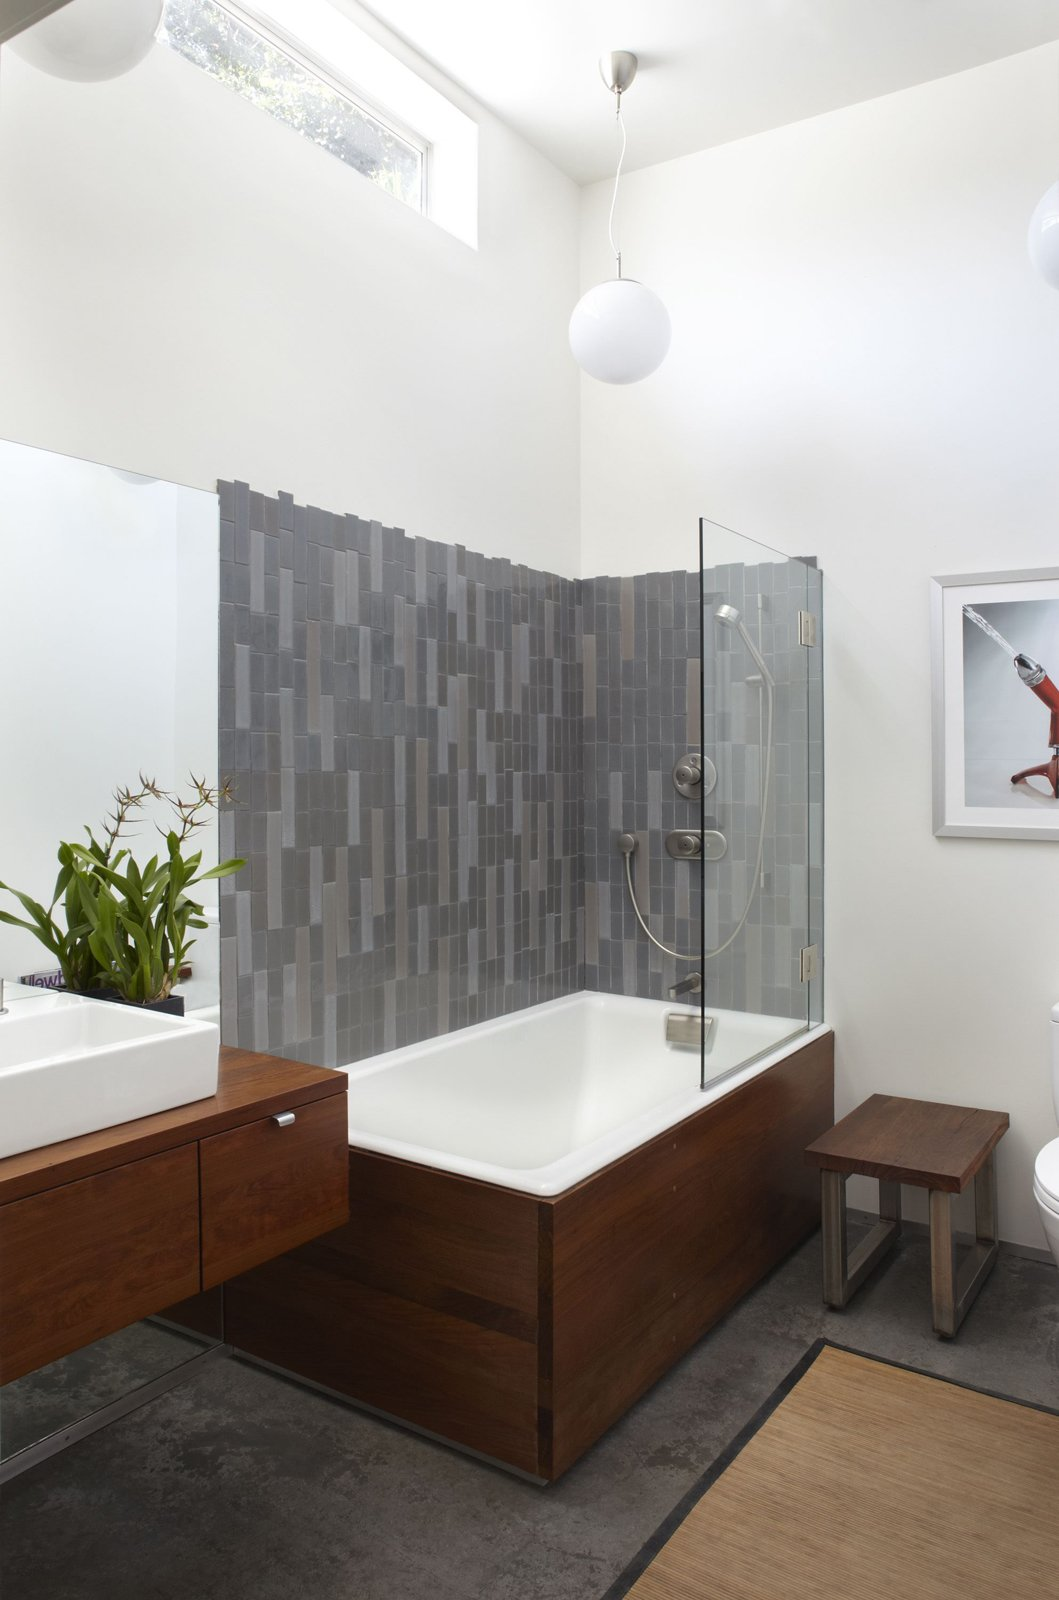 """Shoup accentuated the feeling of space in the master bath by opening it up to the full ceiling height. Ipe wood sheathes the sink and tub. """"The tile has the appearance of stranding to play off the bamboo in the bedroom,"""" notes Shoup, who sourced the tile at Heath Ceramics' seconds warehouse. """"I pulled a bunch of their less-than-perfect tiles. They're a little bent, and the glazing is a bit off, but the lack of perfection actually serves us well."""" The light fixtures are from Ikea. Photo by building Lab inc.  Photo 9 of 11 in Creative Re-Use in Oakland"""